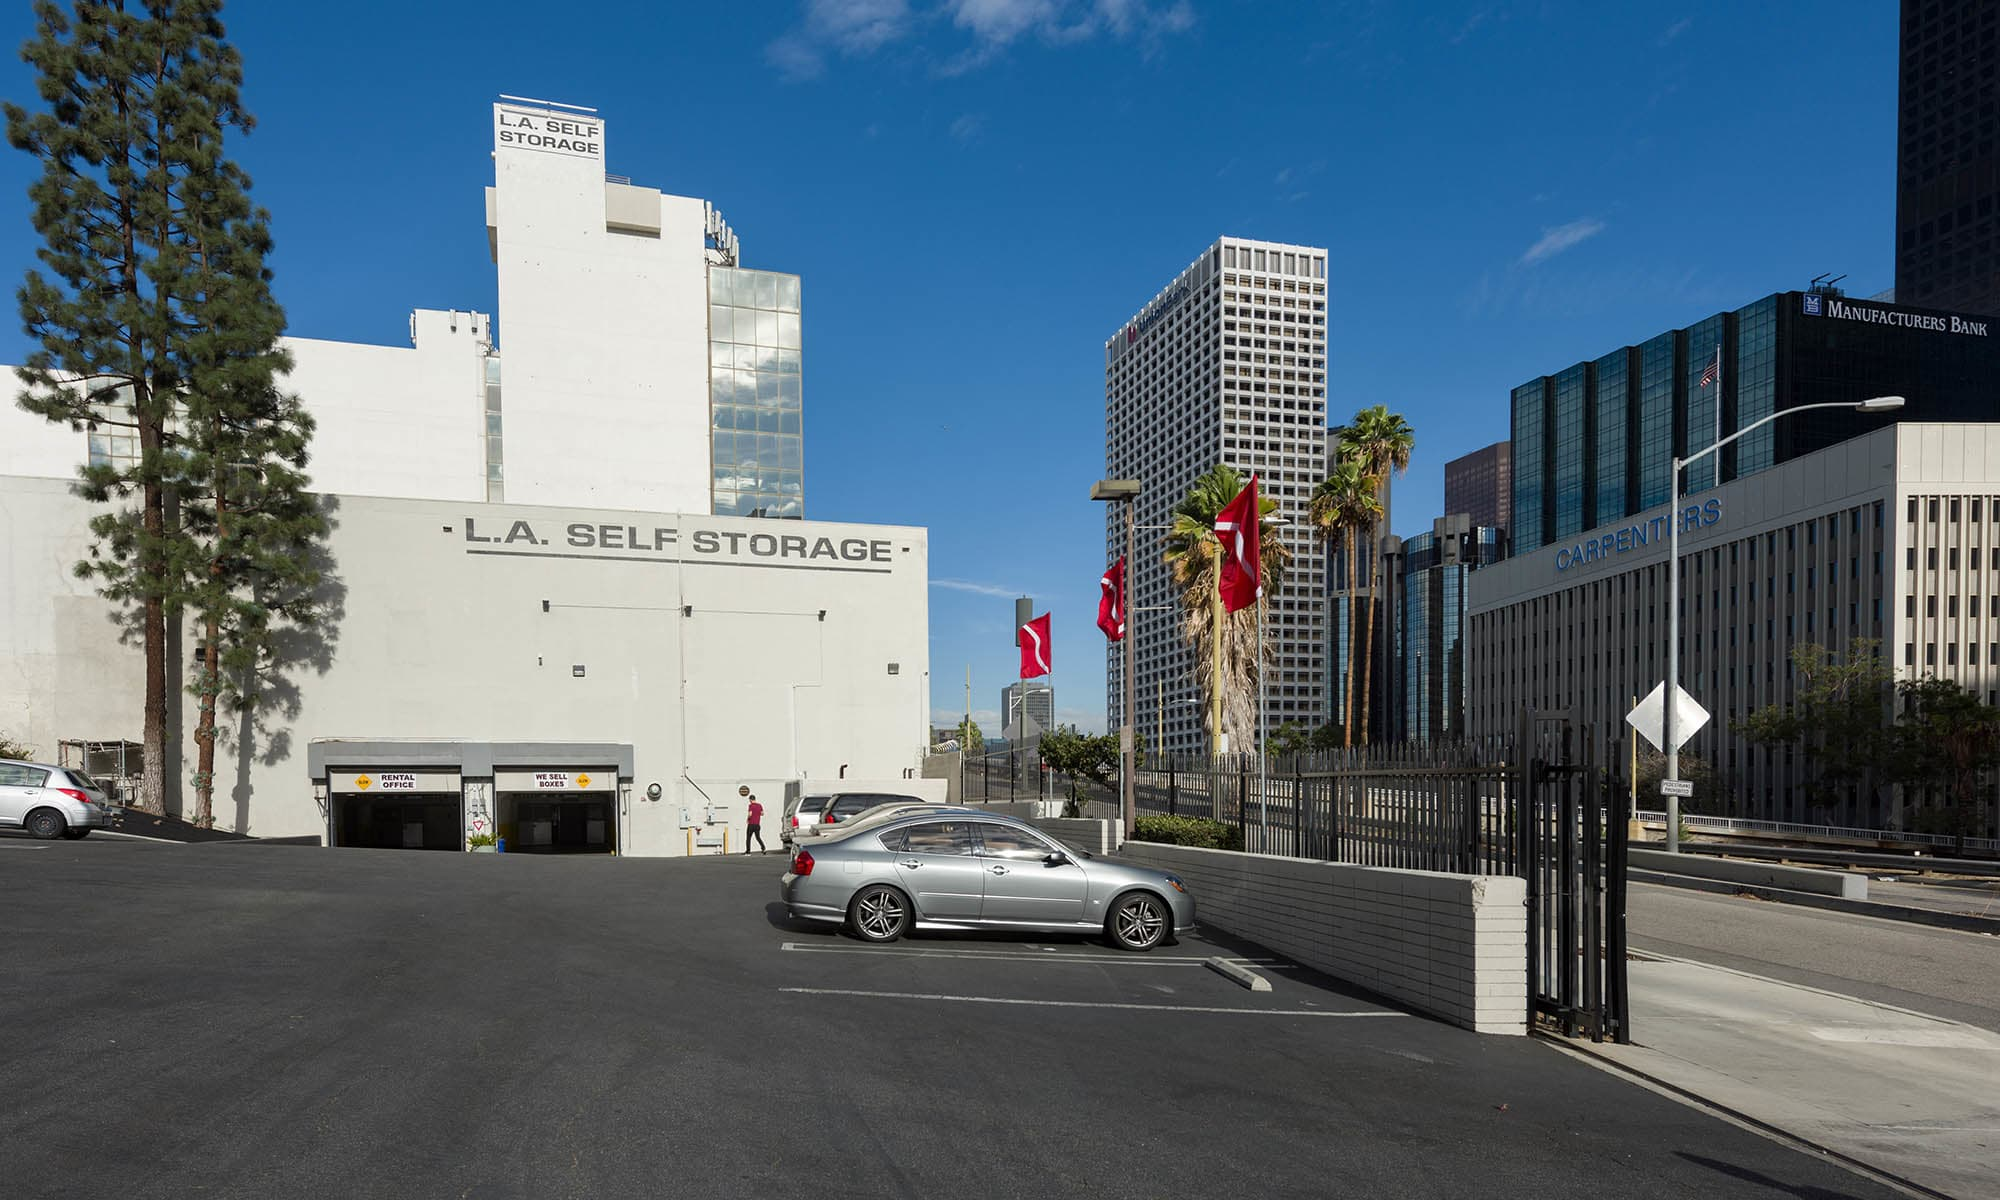 Los Angeles Self Storage - Home of the 1st Year Price Guarantee!